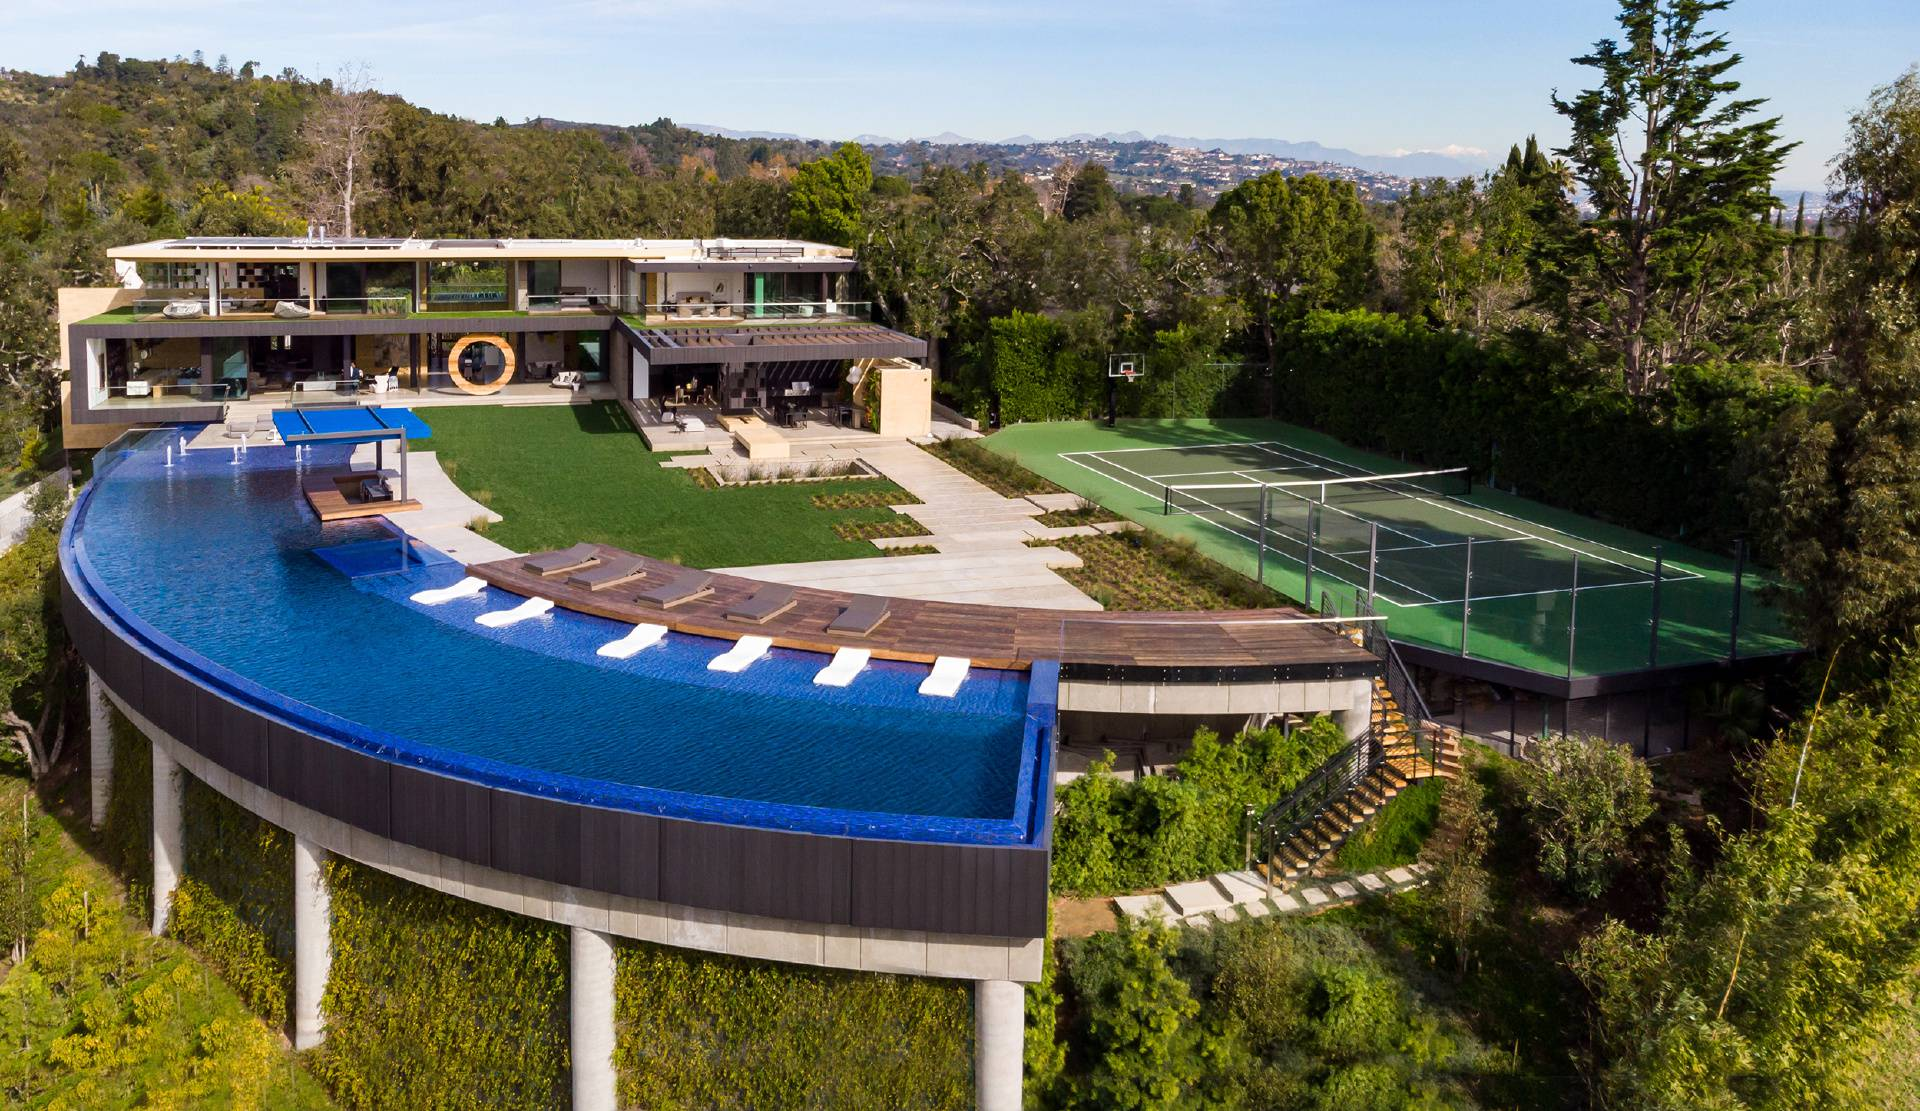 Bentley Circle Modern Mansion – The pinnacle of luxury living in Los Angeles